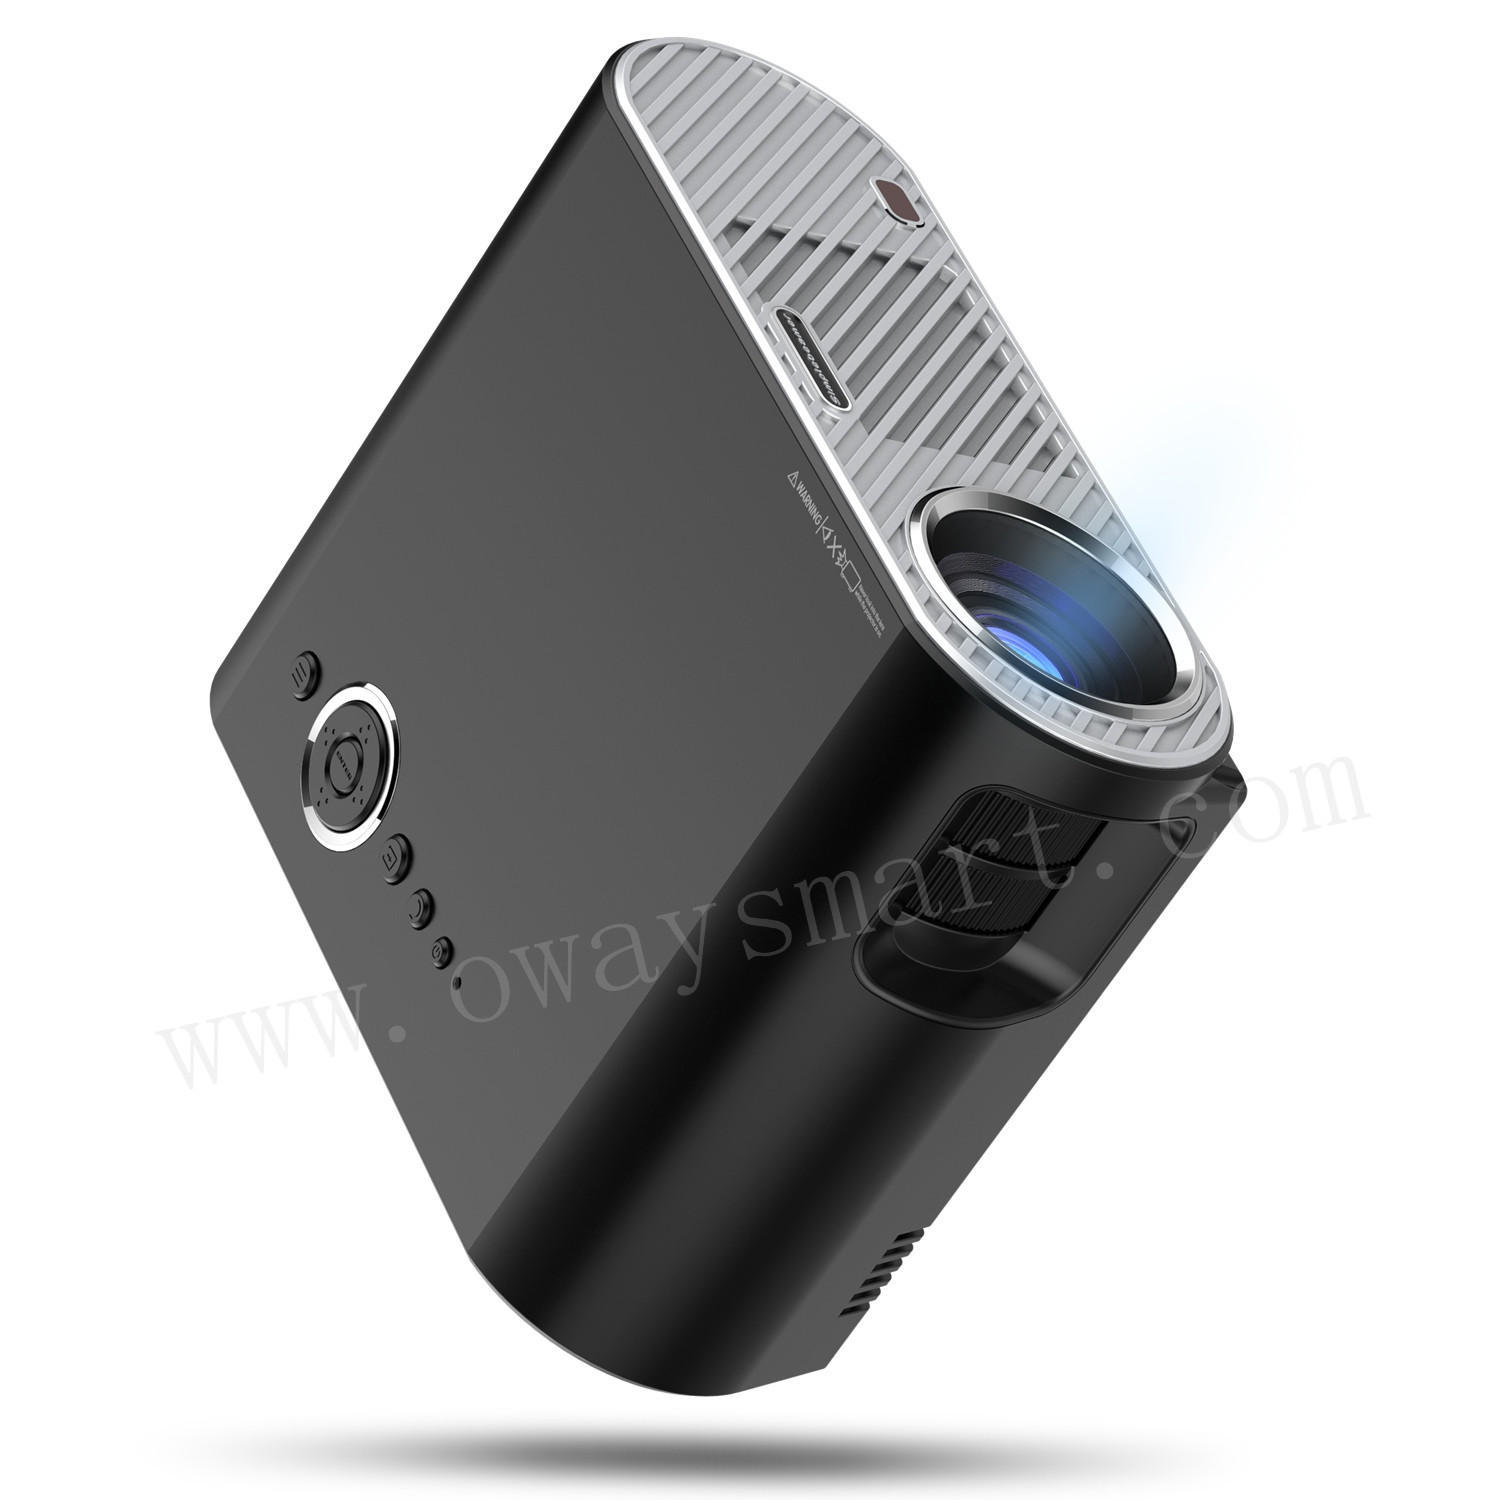 Best Selling And Most Popular Video Projector High Power Of 2016 Eug X760 2500 Lumens Resolution 1024 X 600 Tv Tunner Cheap Price Cost Effective Portable Home Strongprojector Strong Mobile